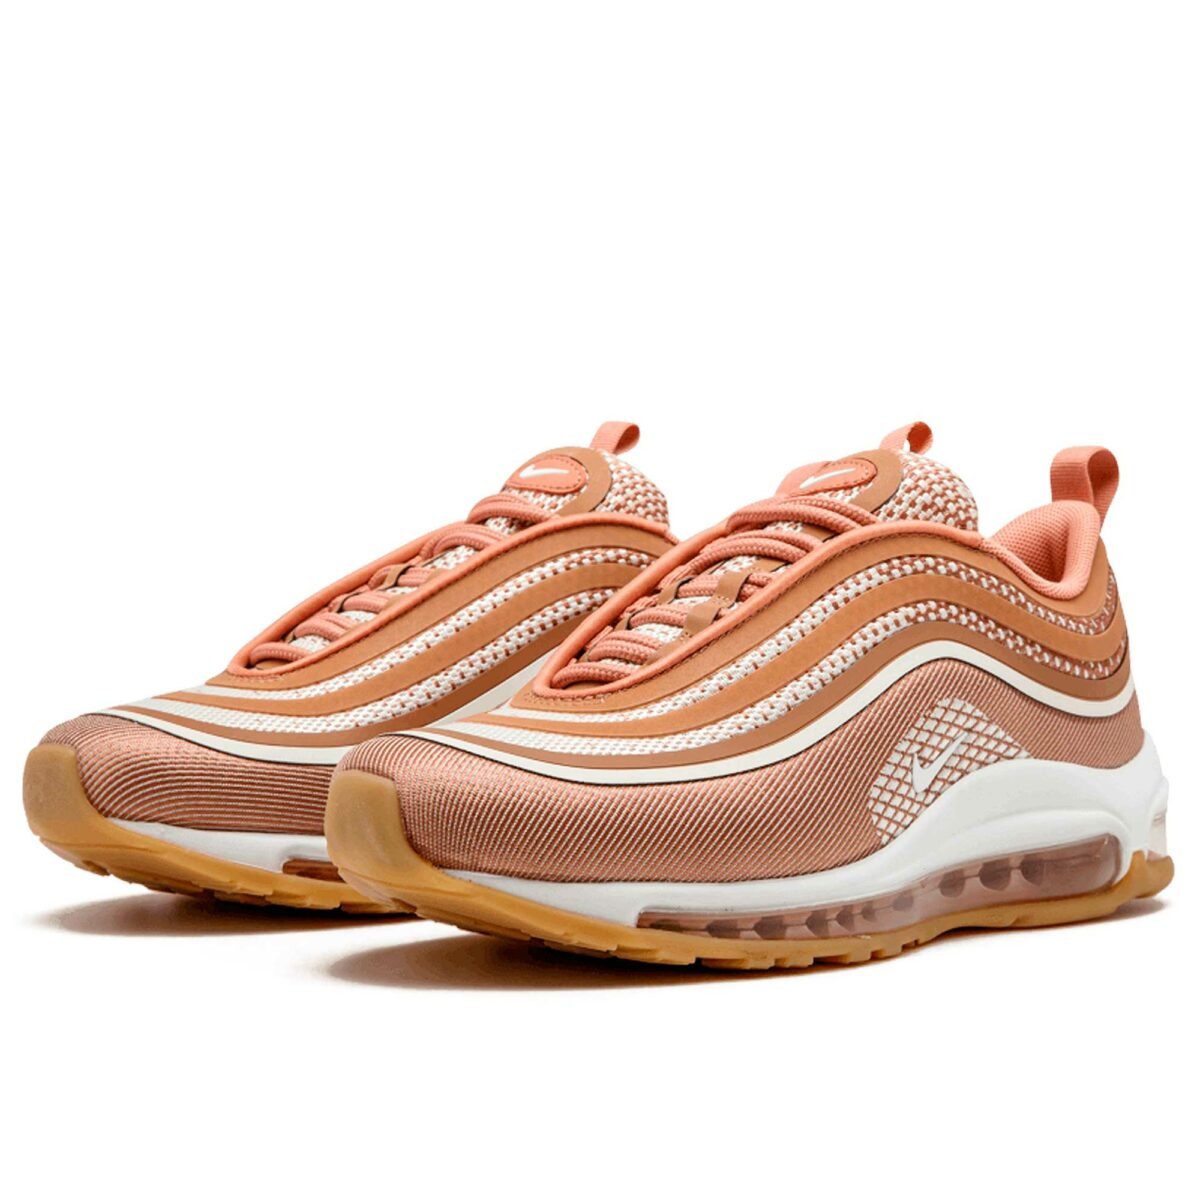 nike w air max 97 ul '17 rose gold 917704_600 купить